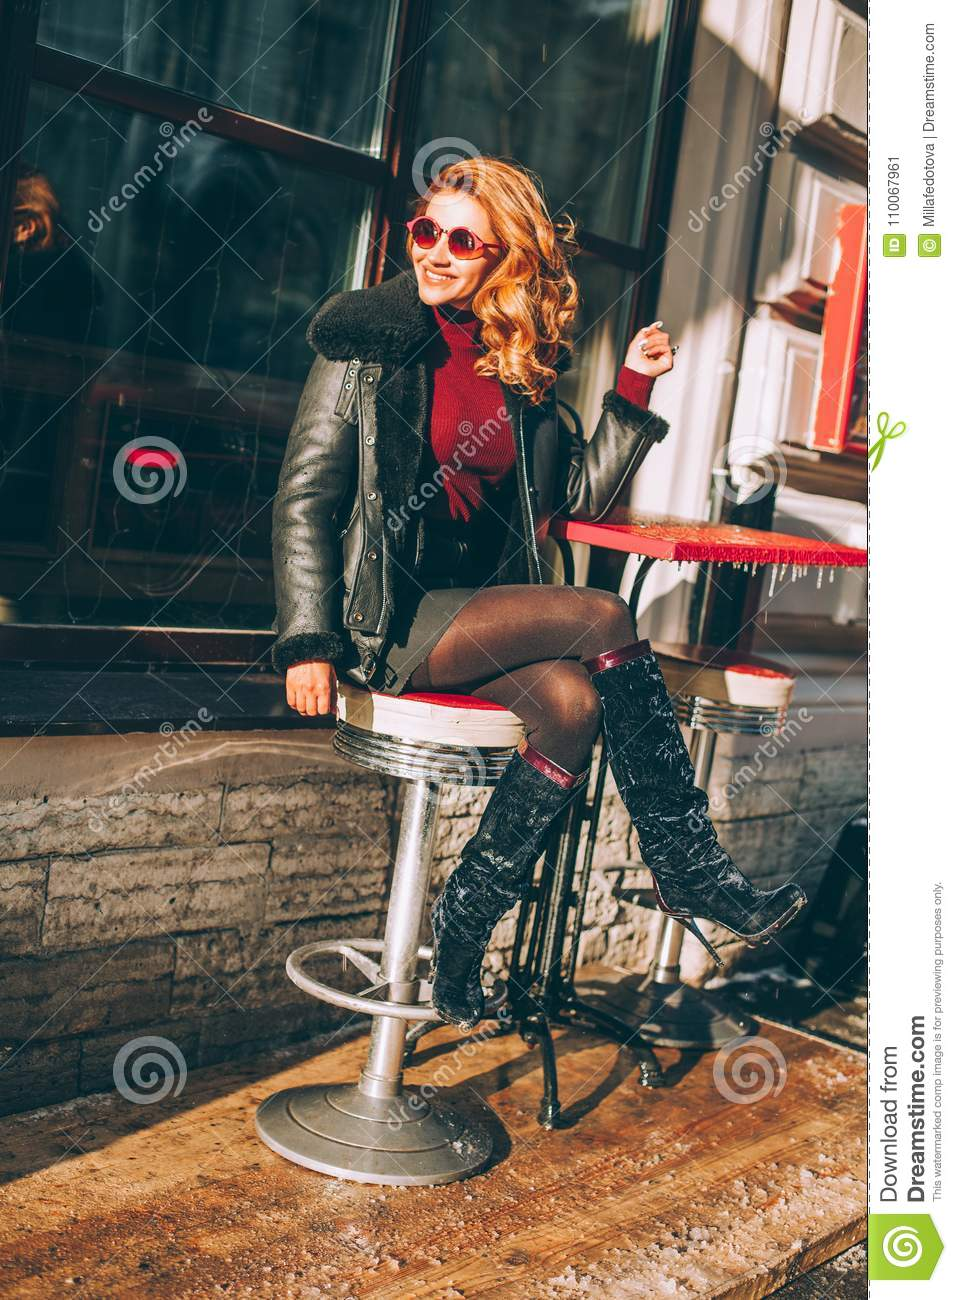 Happy Redhead Woman Laughing in Street Cafe